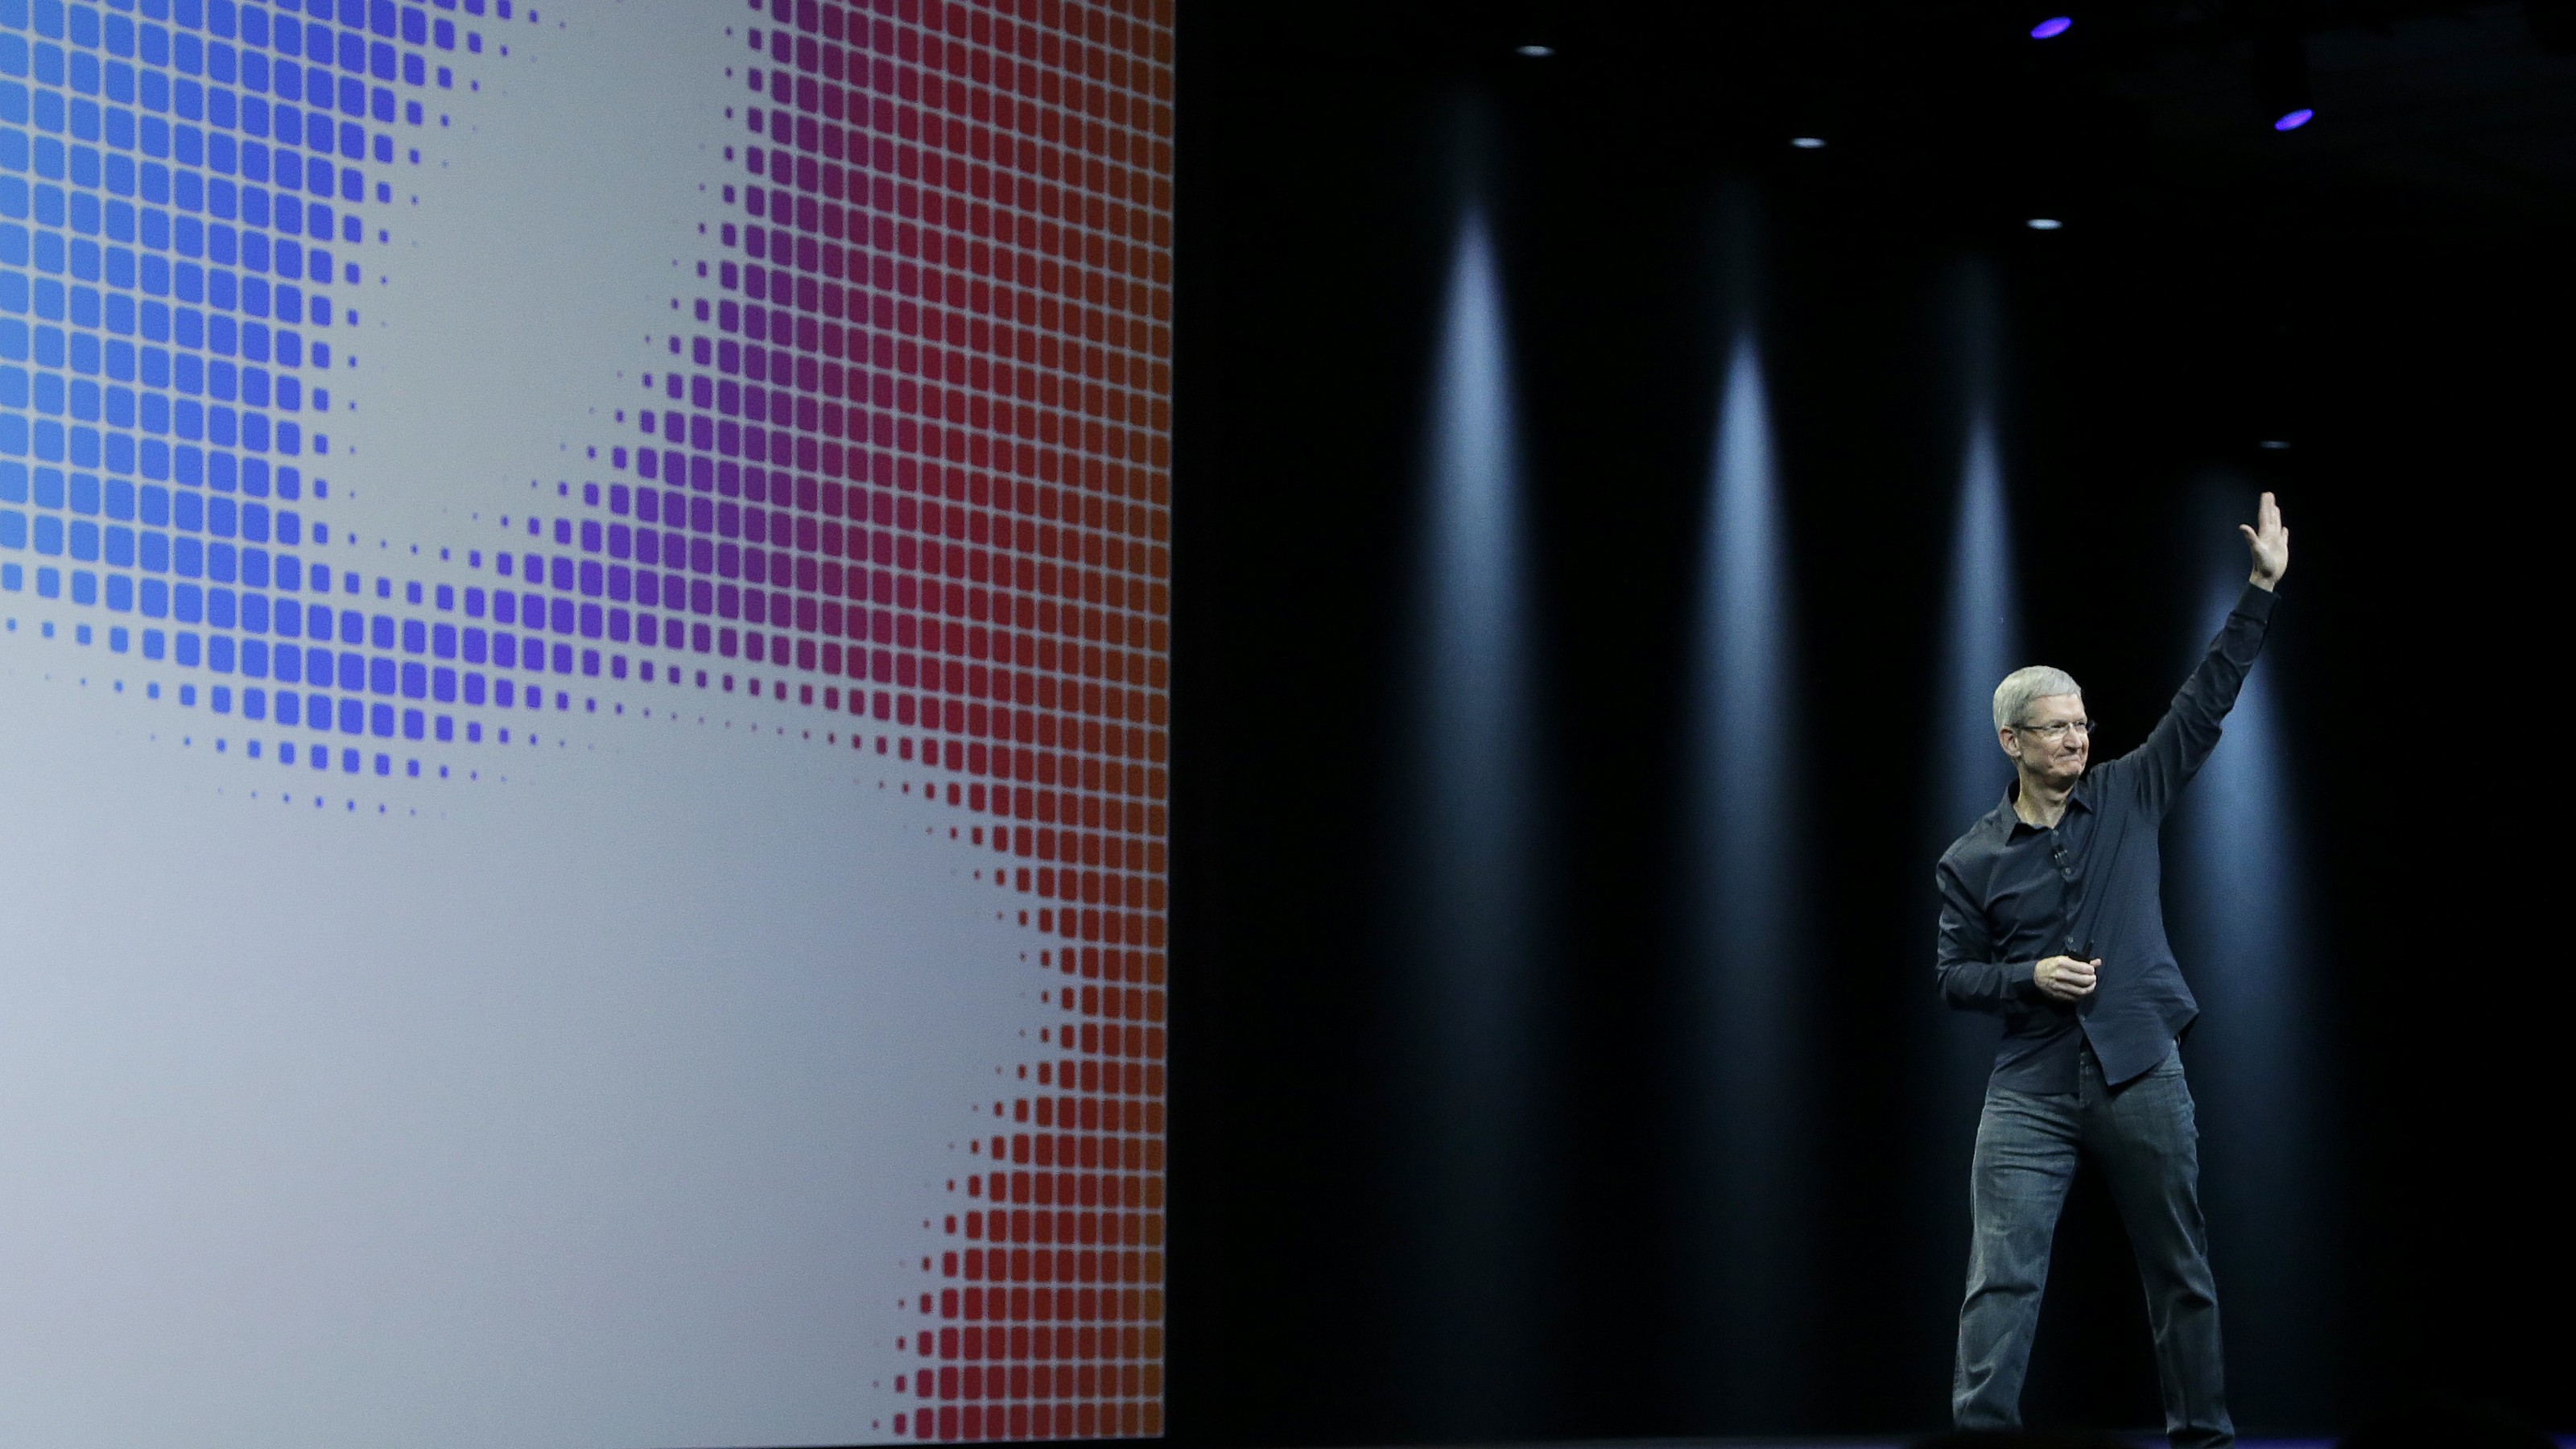 Apple CEO Tim Cook waves after speaking at an Apple Worldwide Developers Conference event in San Francisco, Monday, June 2, 2014. (AP Photo/Jeff Chiu)